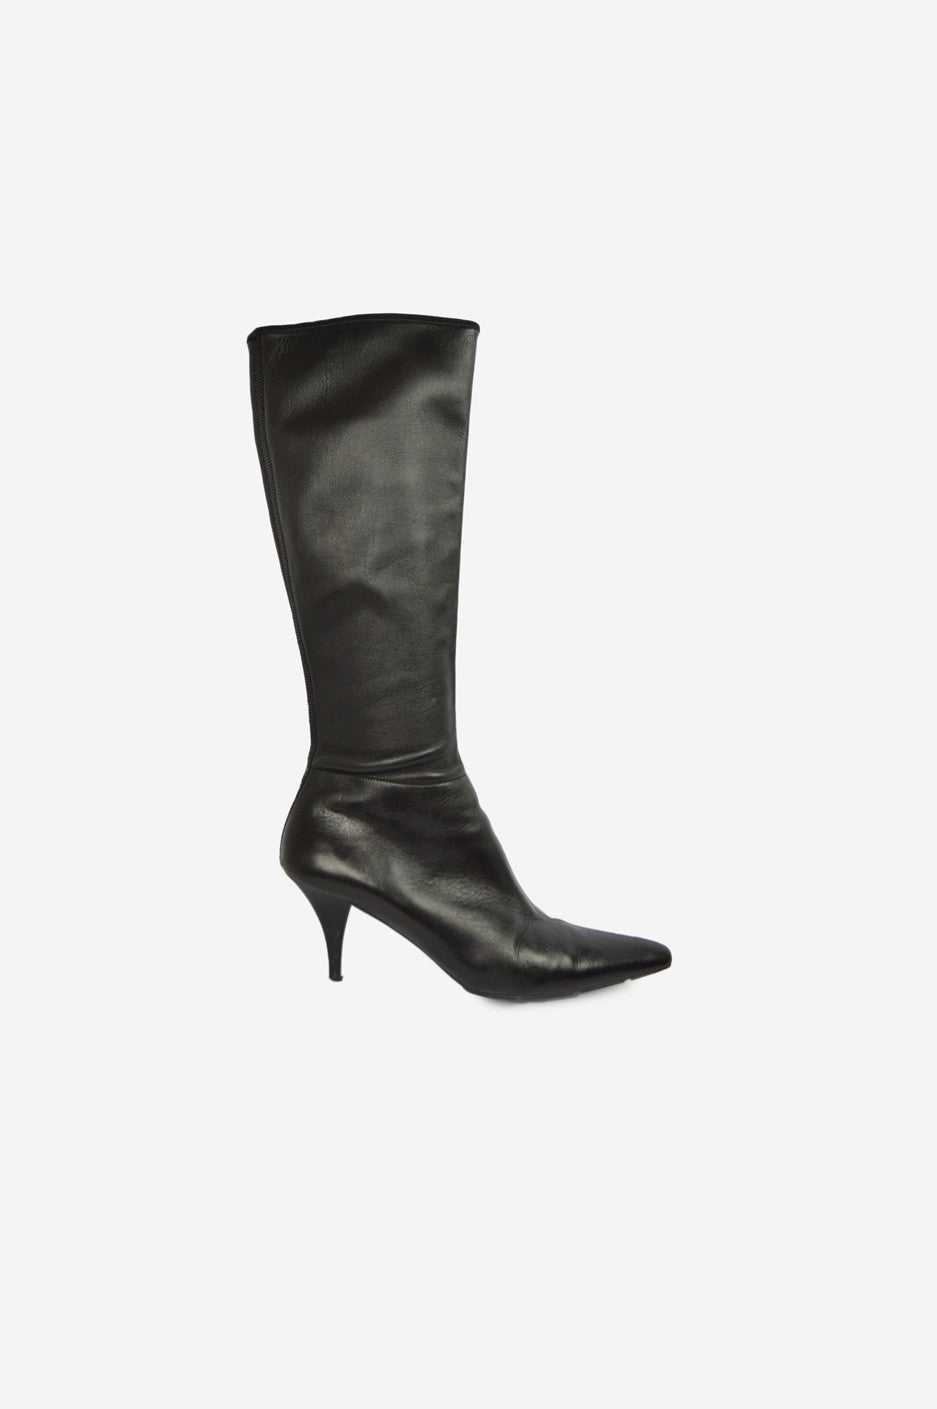 Black Pointed-Toe Boots